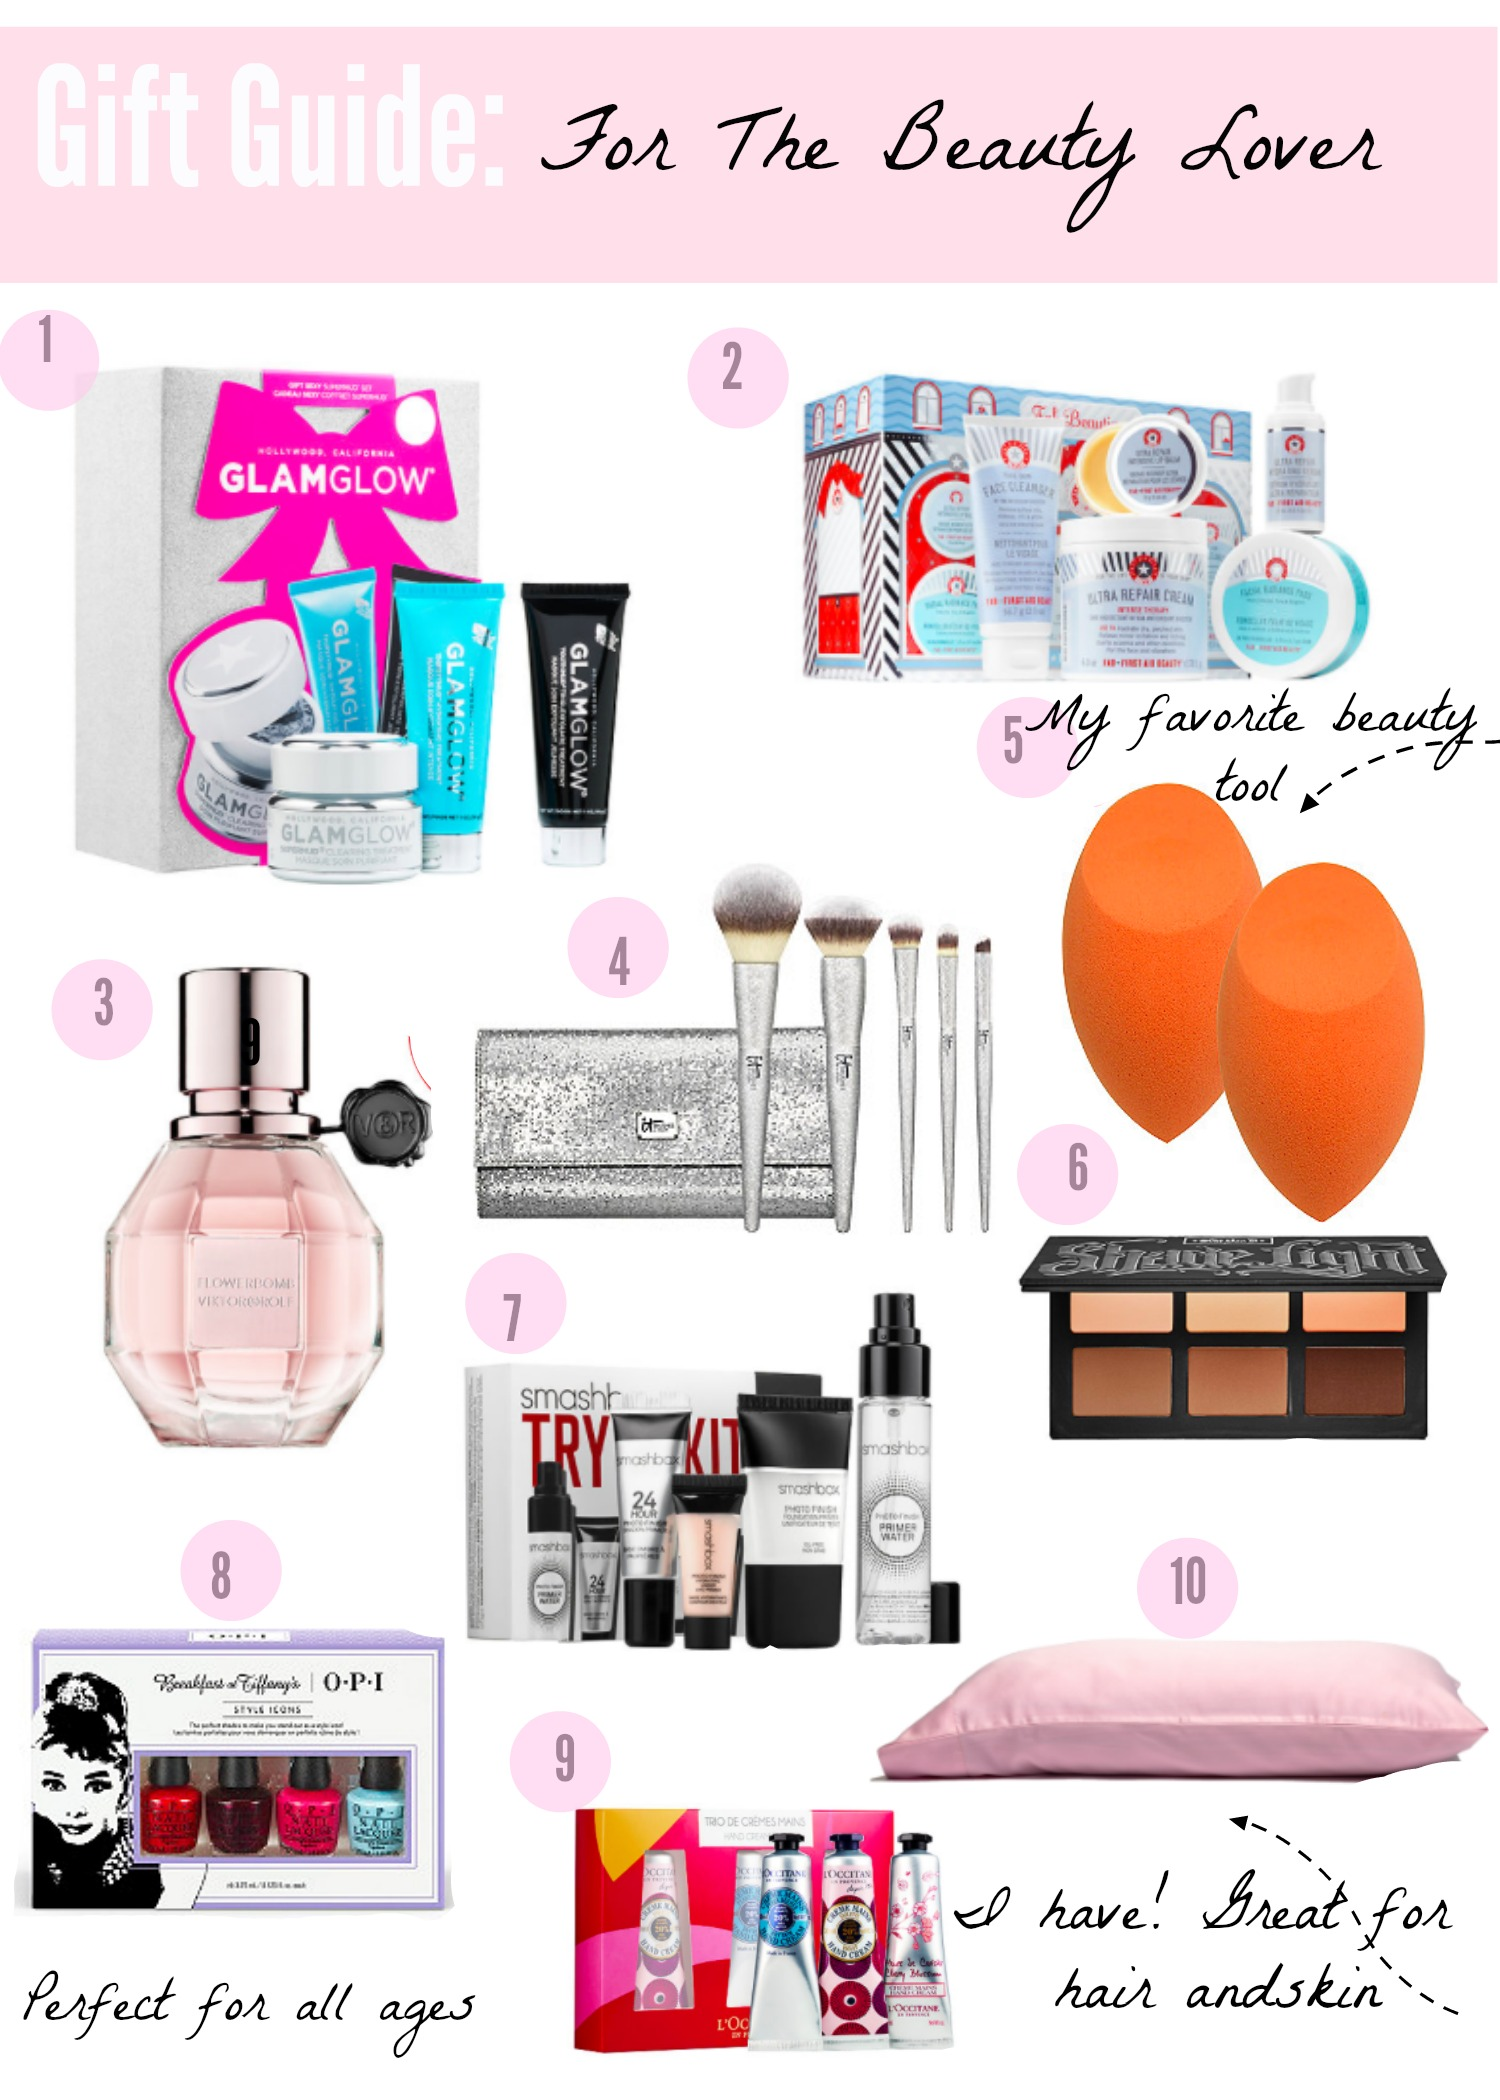 Gift Guide For the Beauty Lover | AMS Blog